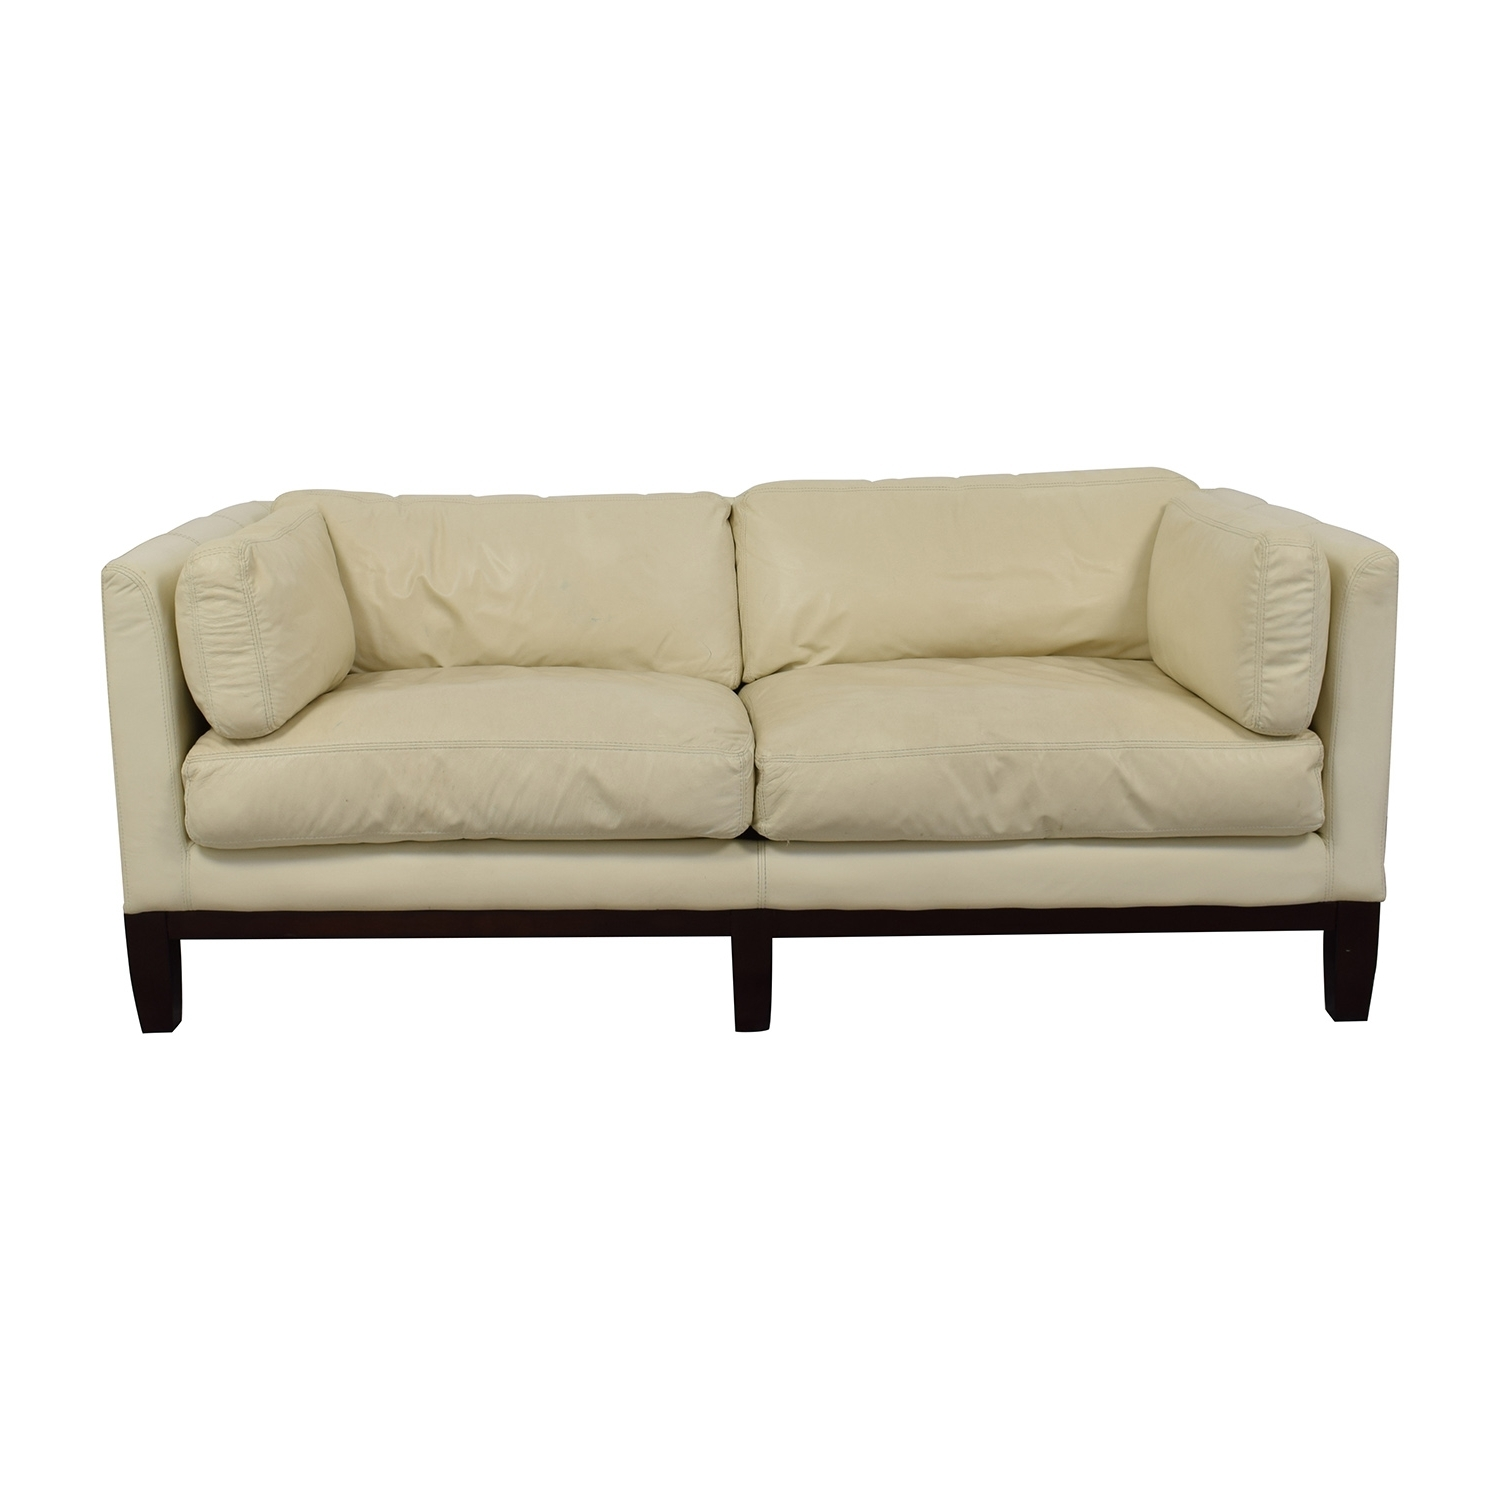 [%72% Off – Decoro Decoro Off White Leather Sofa / Sofas In Widely Used Off White Leather Sofas|Off White Leather Sofas With Most Recent 72% Off – Decoro Decoro Off White Leather Sofa / Sofas|Most Recent Off White Leather Sofas Throughout 72% Off – Decoro Decoro Off White Leather Sofa / Sofas|Recent 72% Off – Decoro Decoro Off White Leather Sofa / Sofas Within Off White Leather Sofas%] (View 9 of 15)